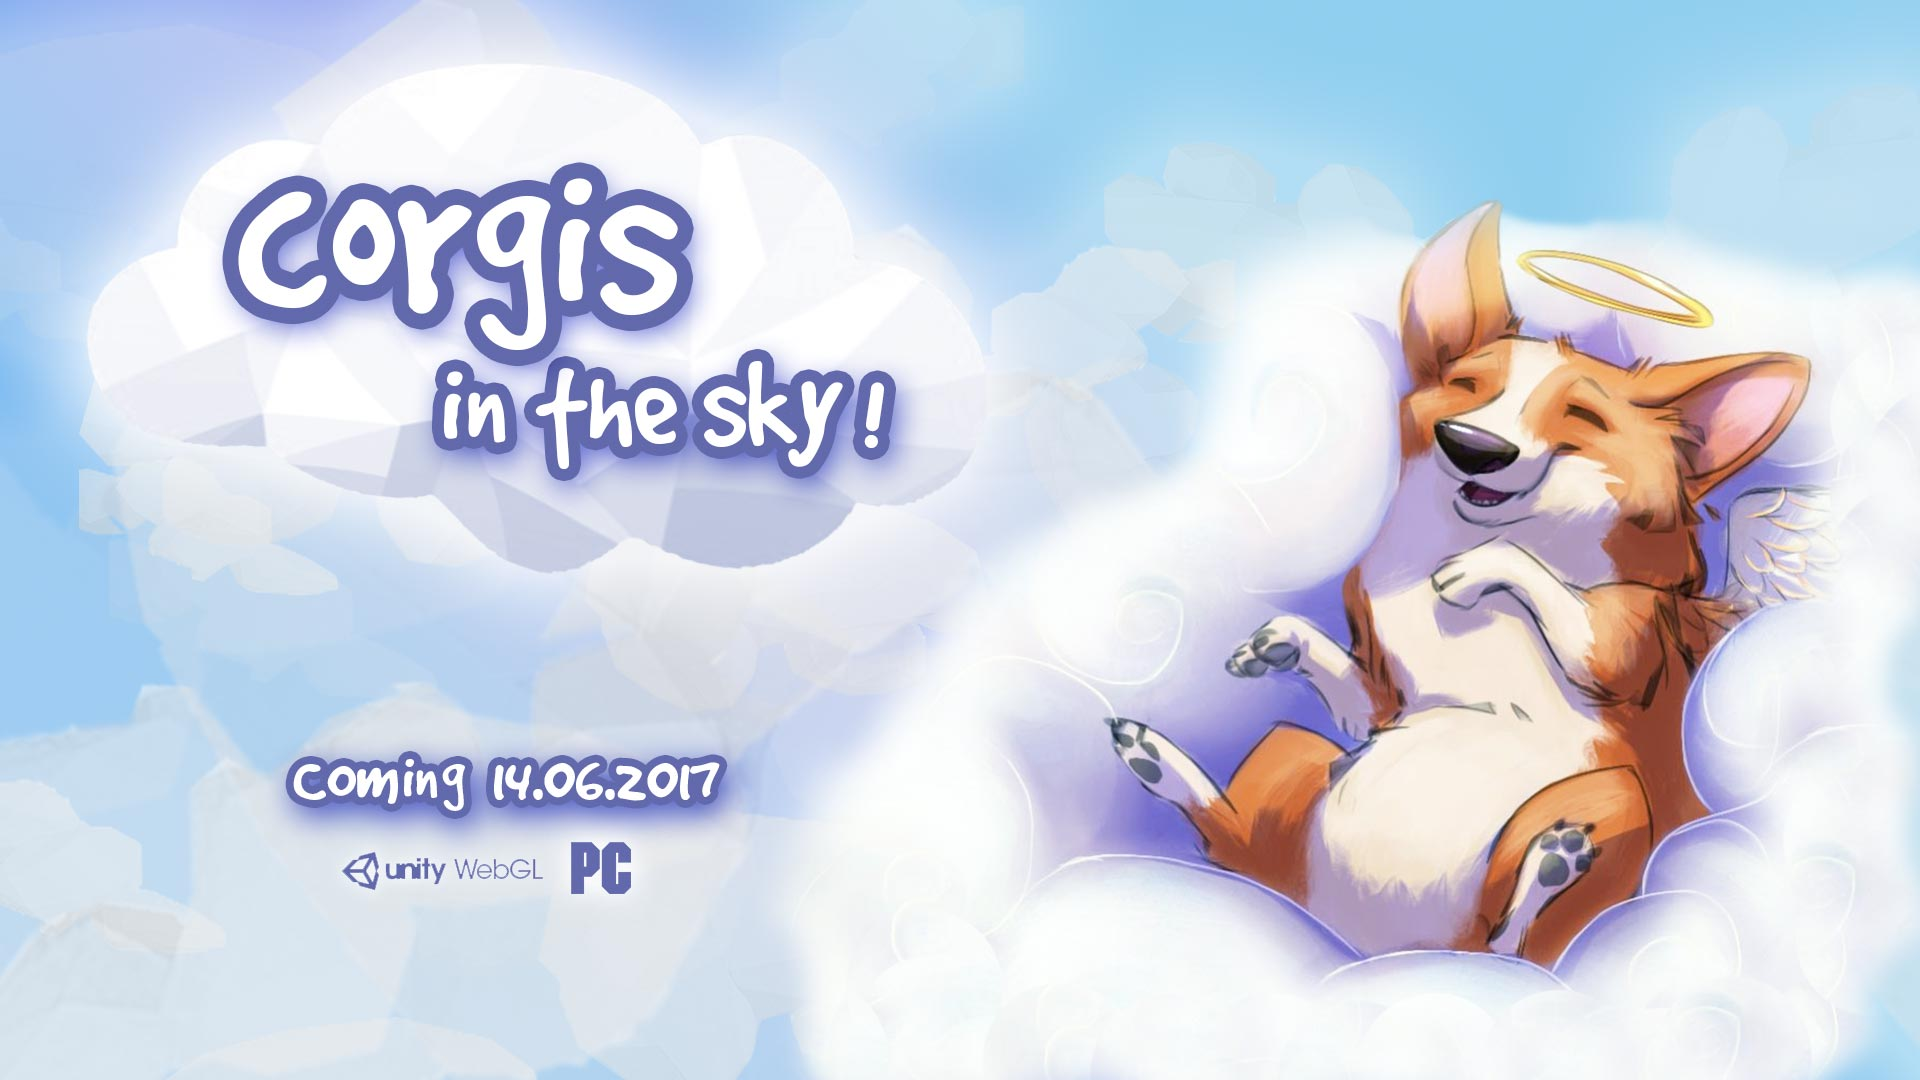 Corgis In The Sky!